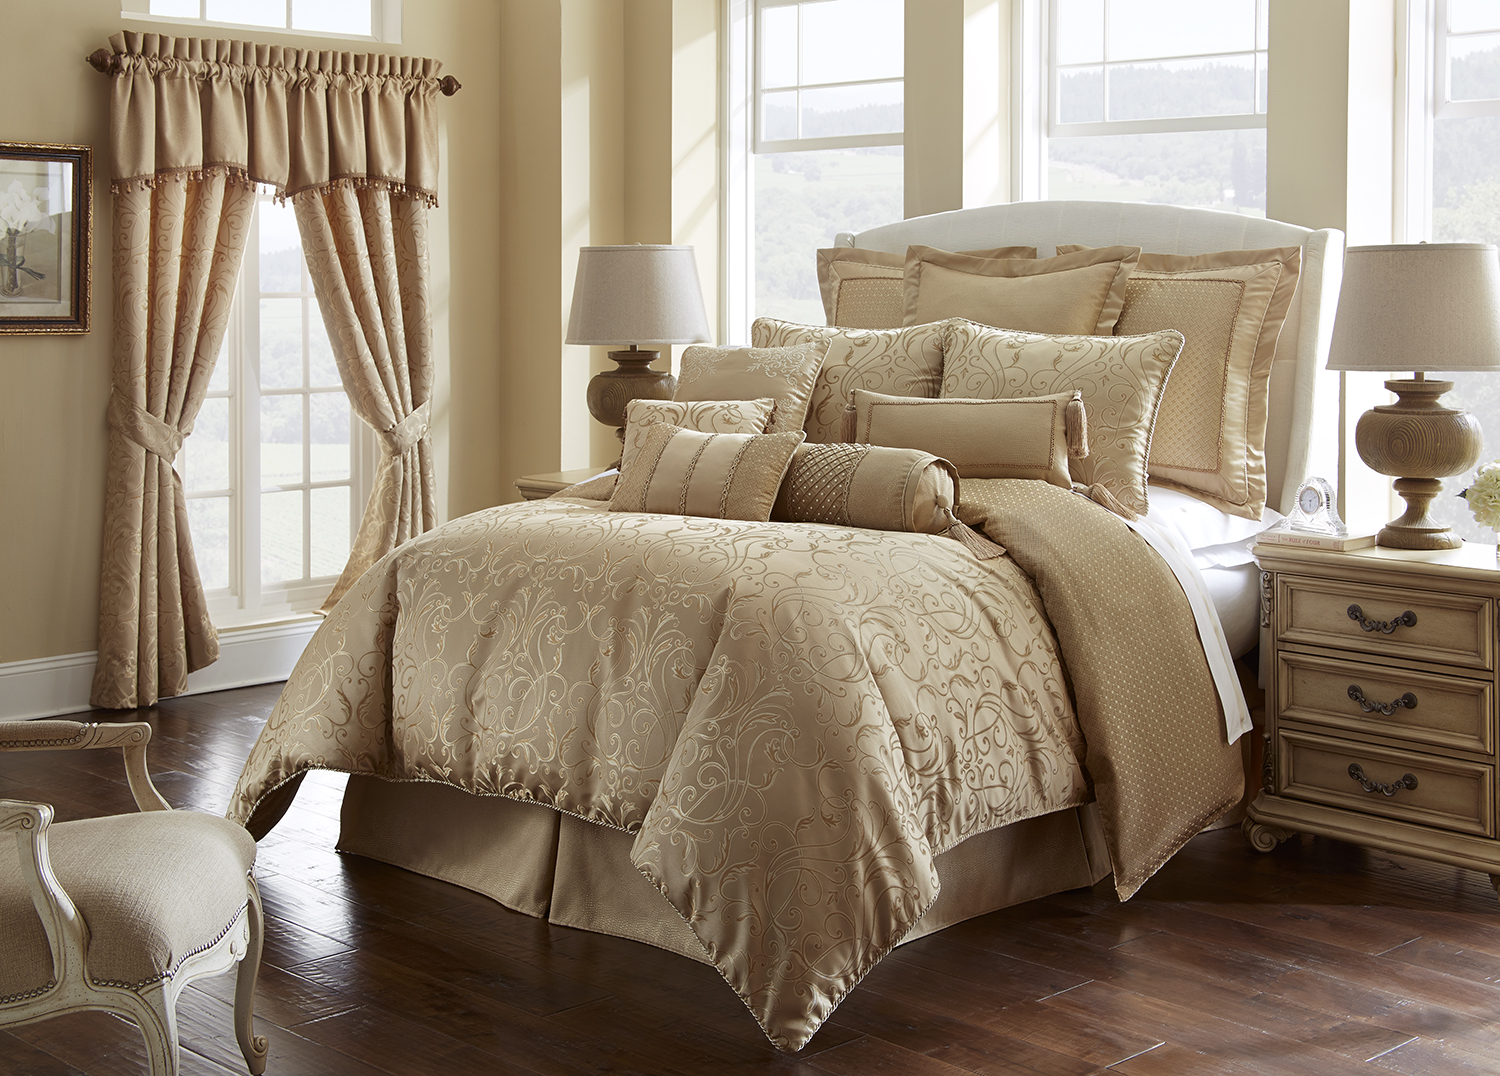 Lynath By Waterford Luxury Bedding Beddingsuperstore Com